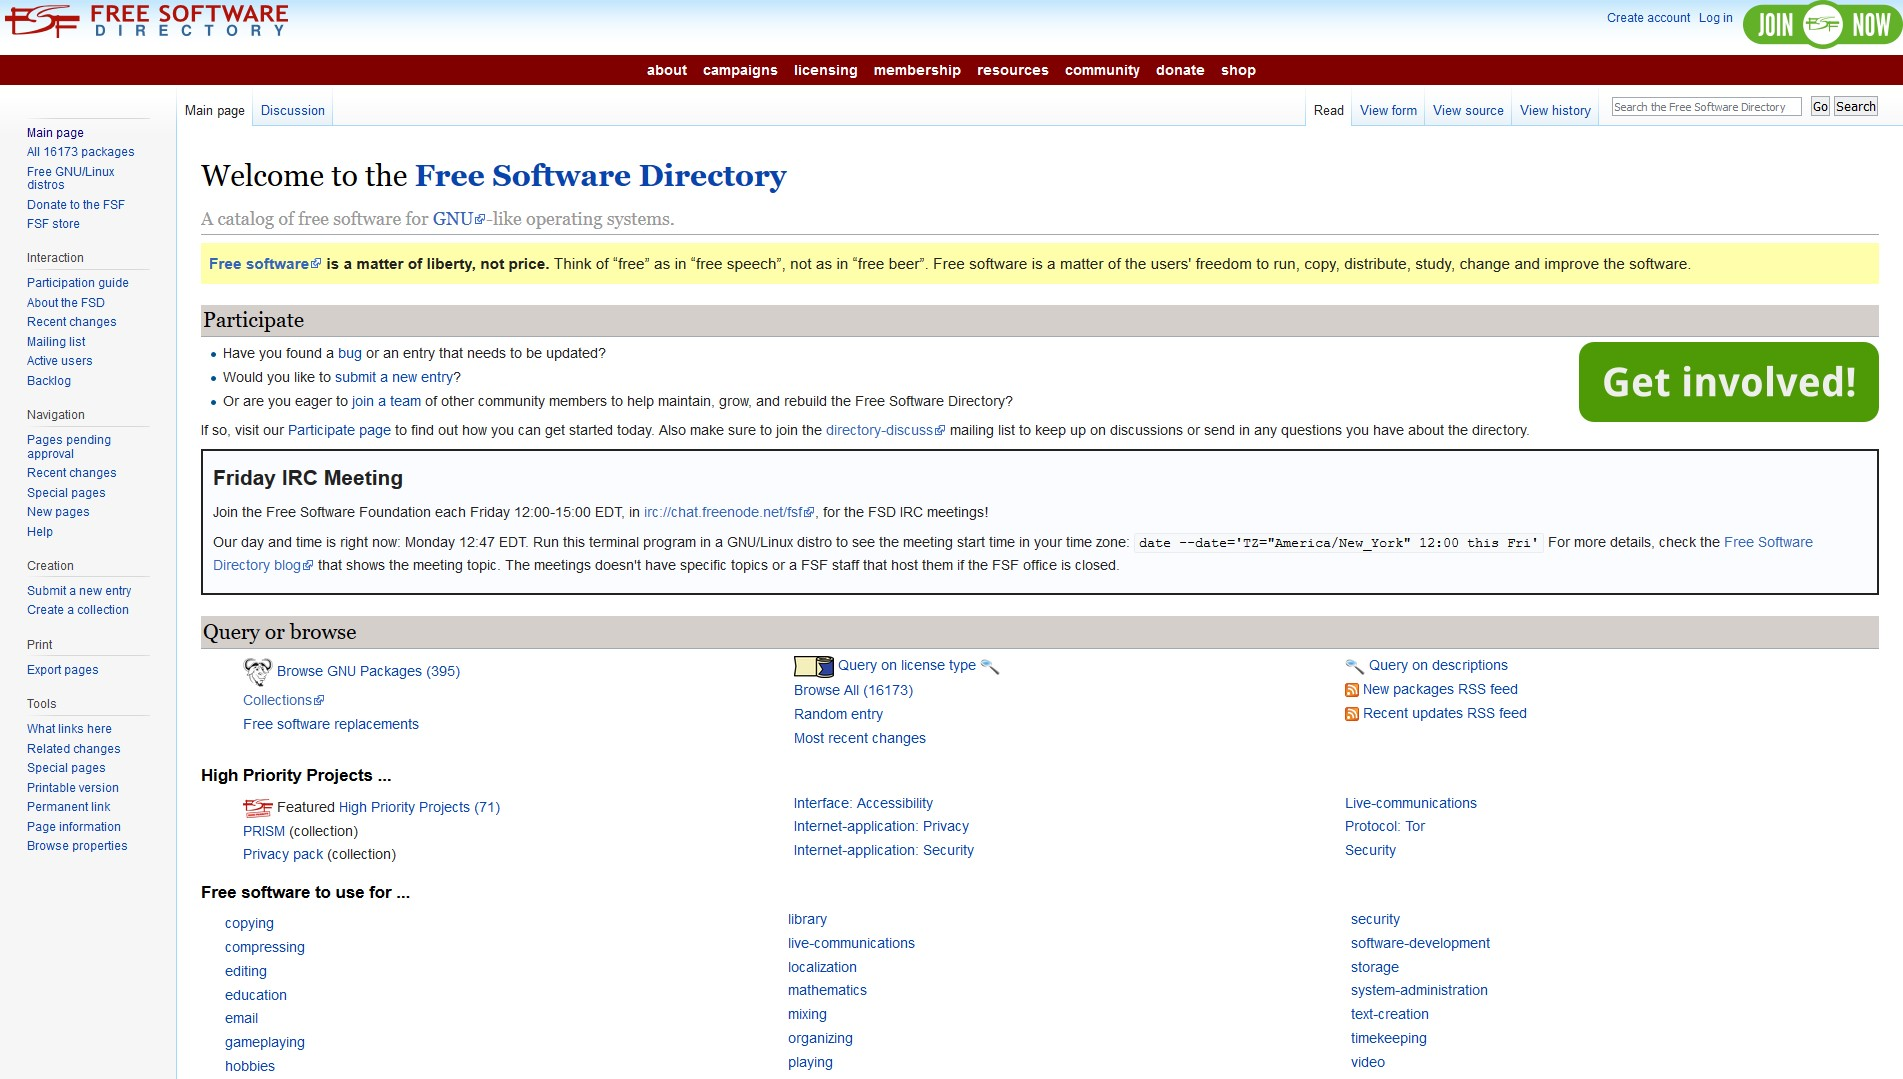 Free Software Directory Alternatives and Similar Websites